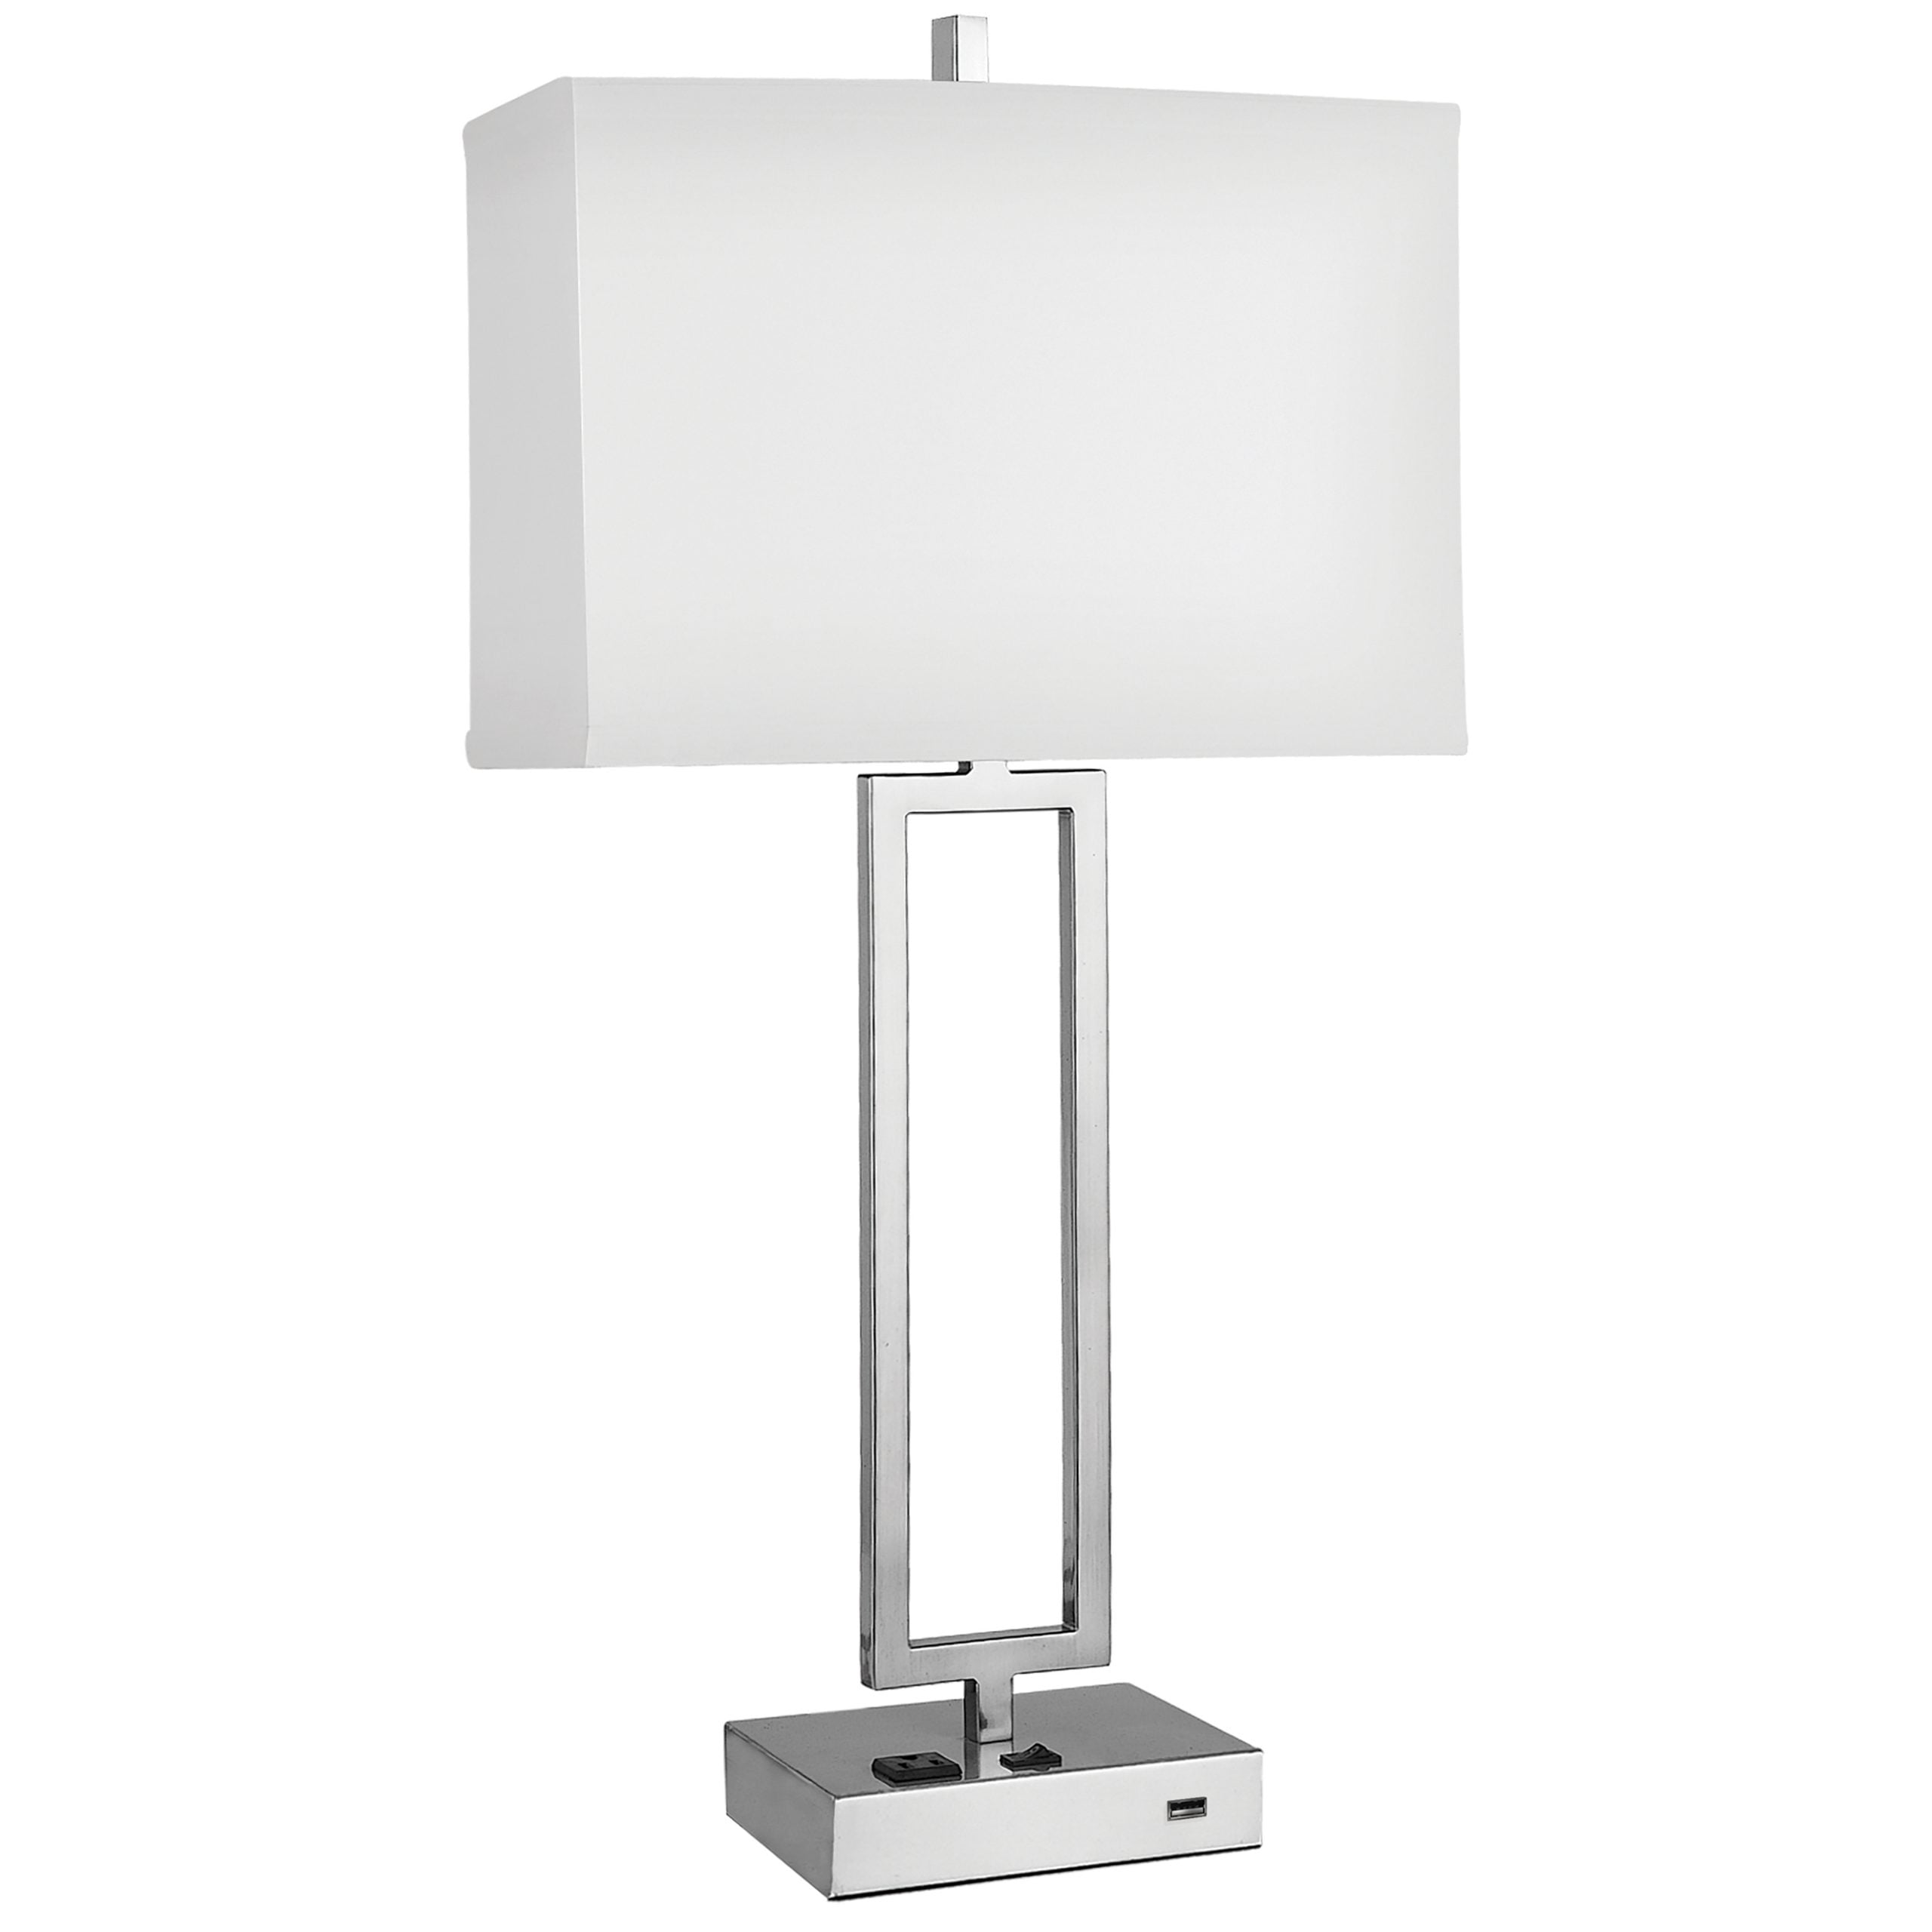 Gatsby Single Table Lamp with 1 Outlet & 1 USB